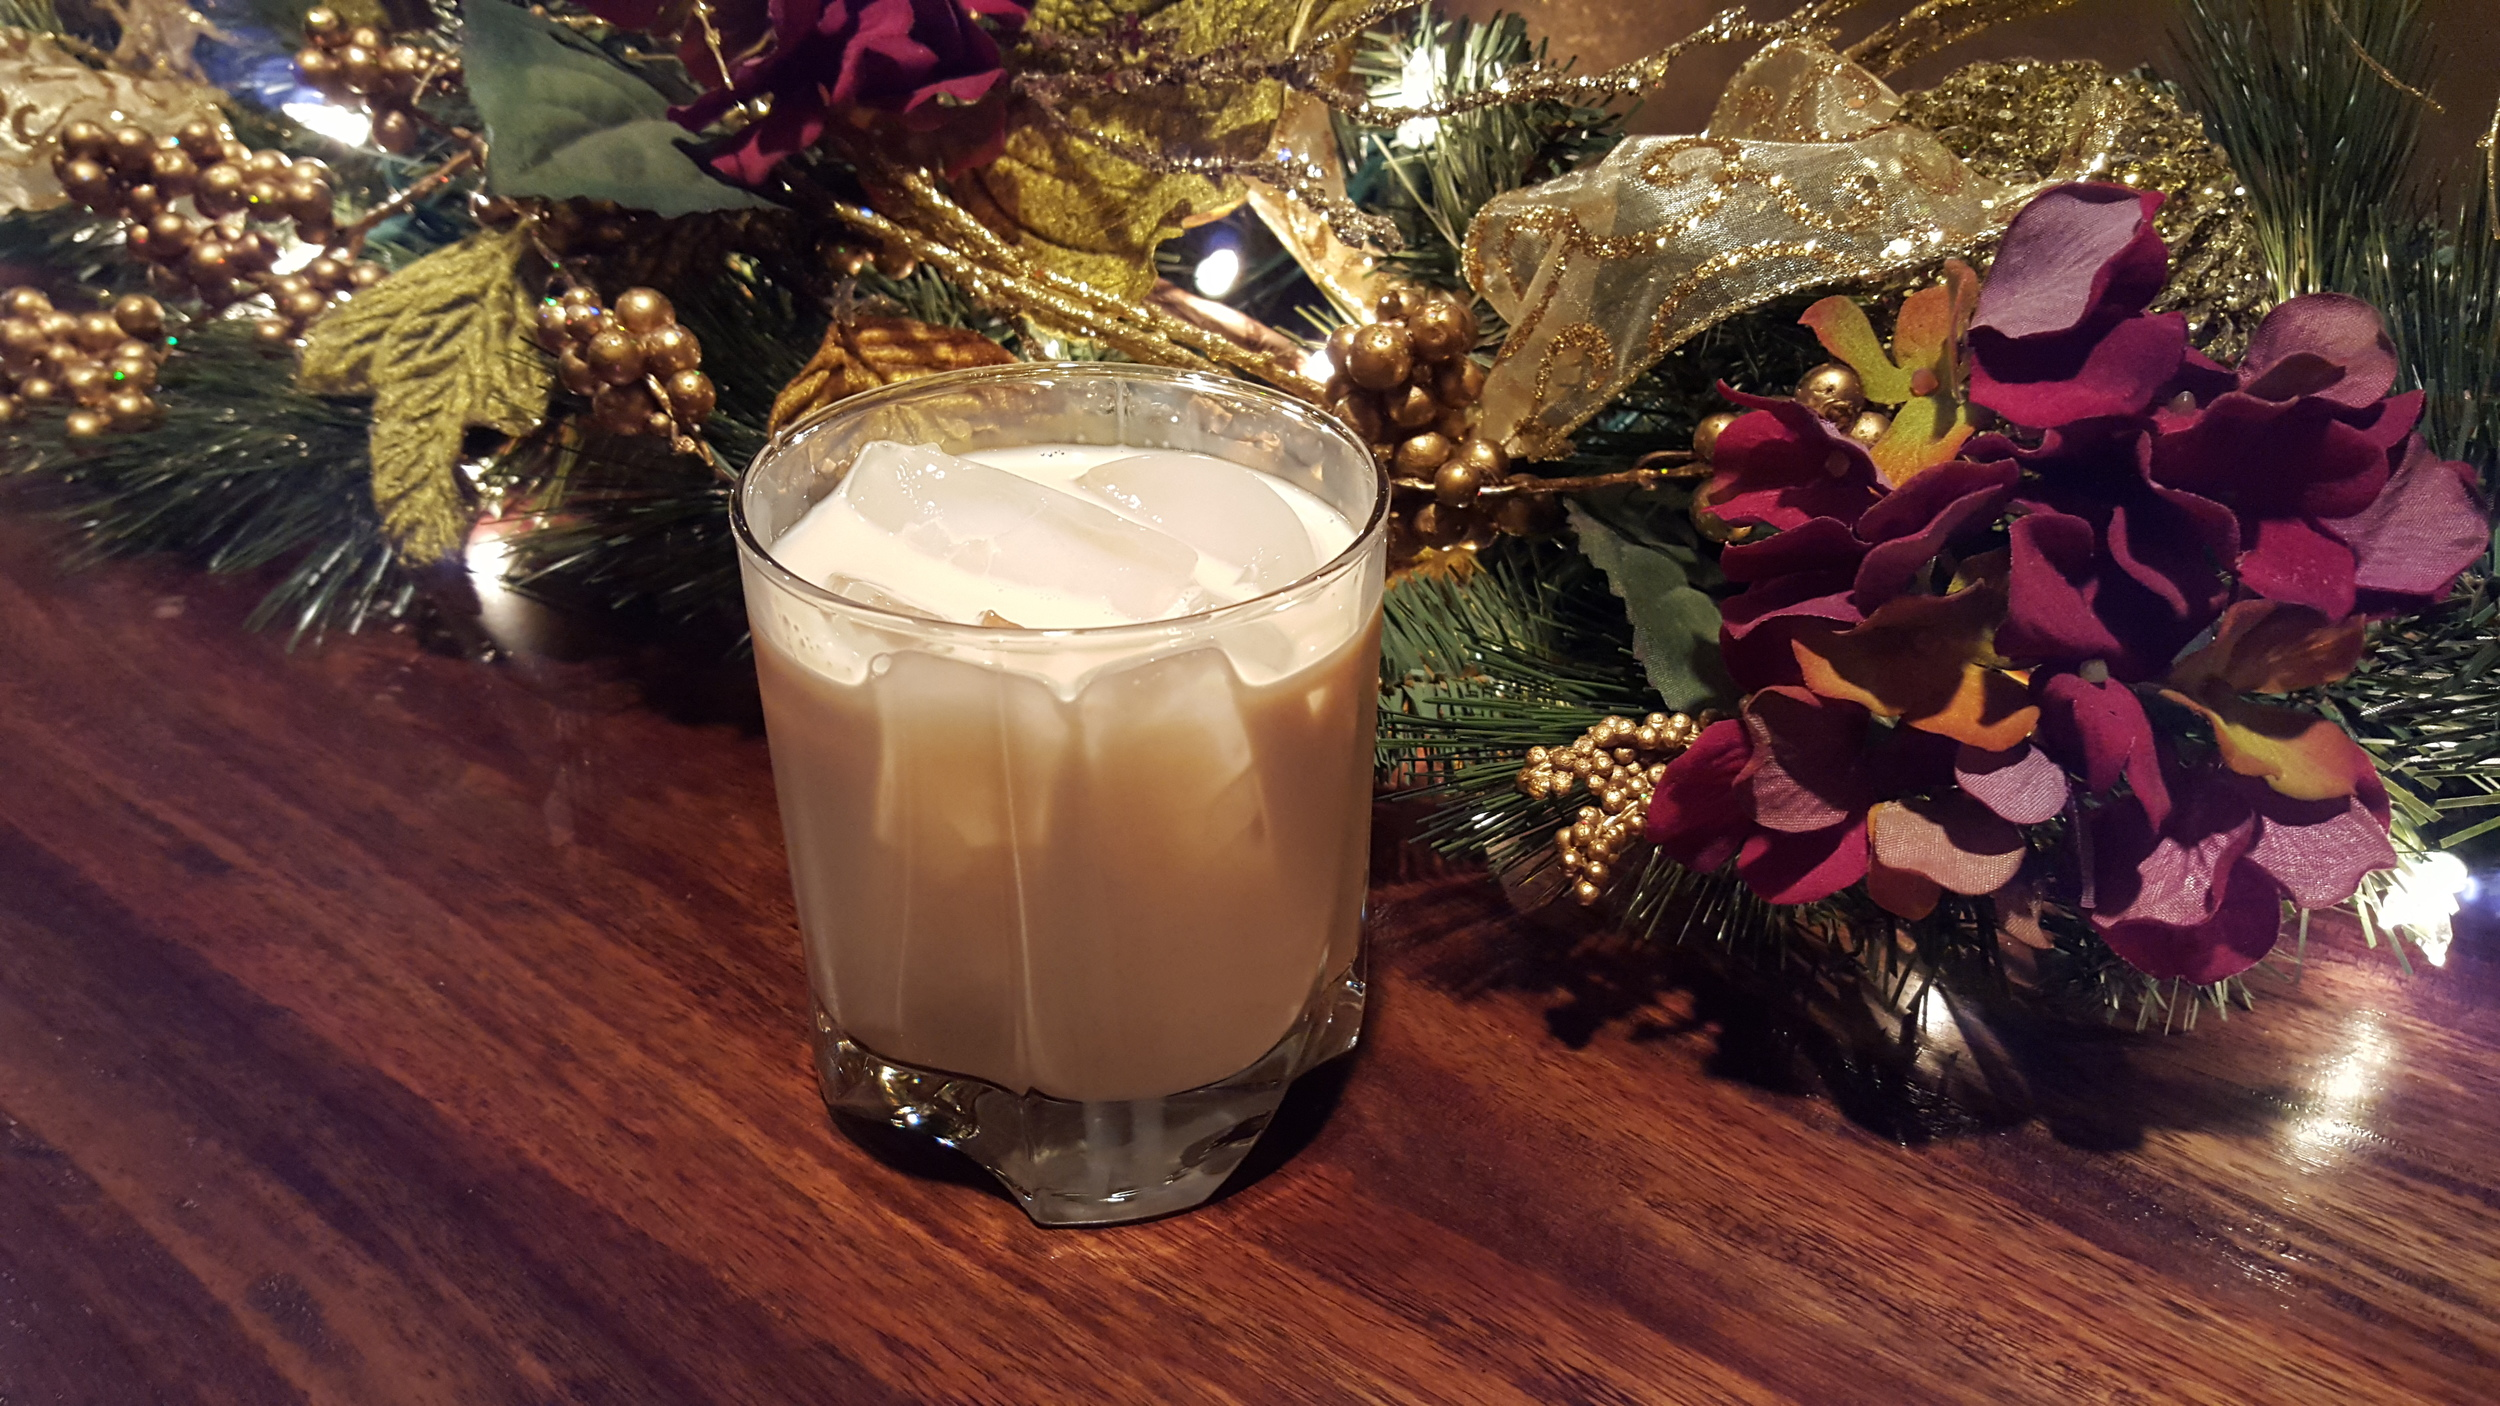 3 Oz. Irish Cream Liquore   1.5 oz. Glacial Lakes Vodka   1.5 oz Half and Half    Serve on ice